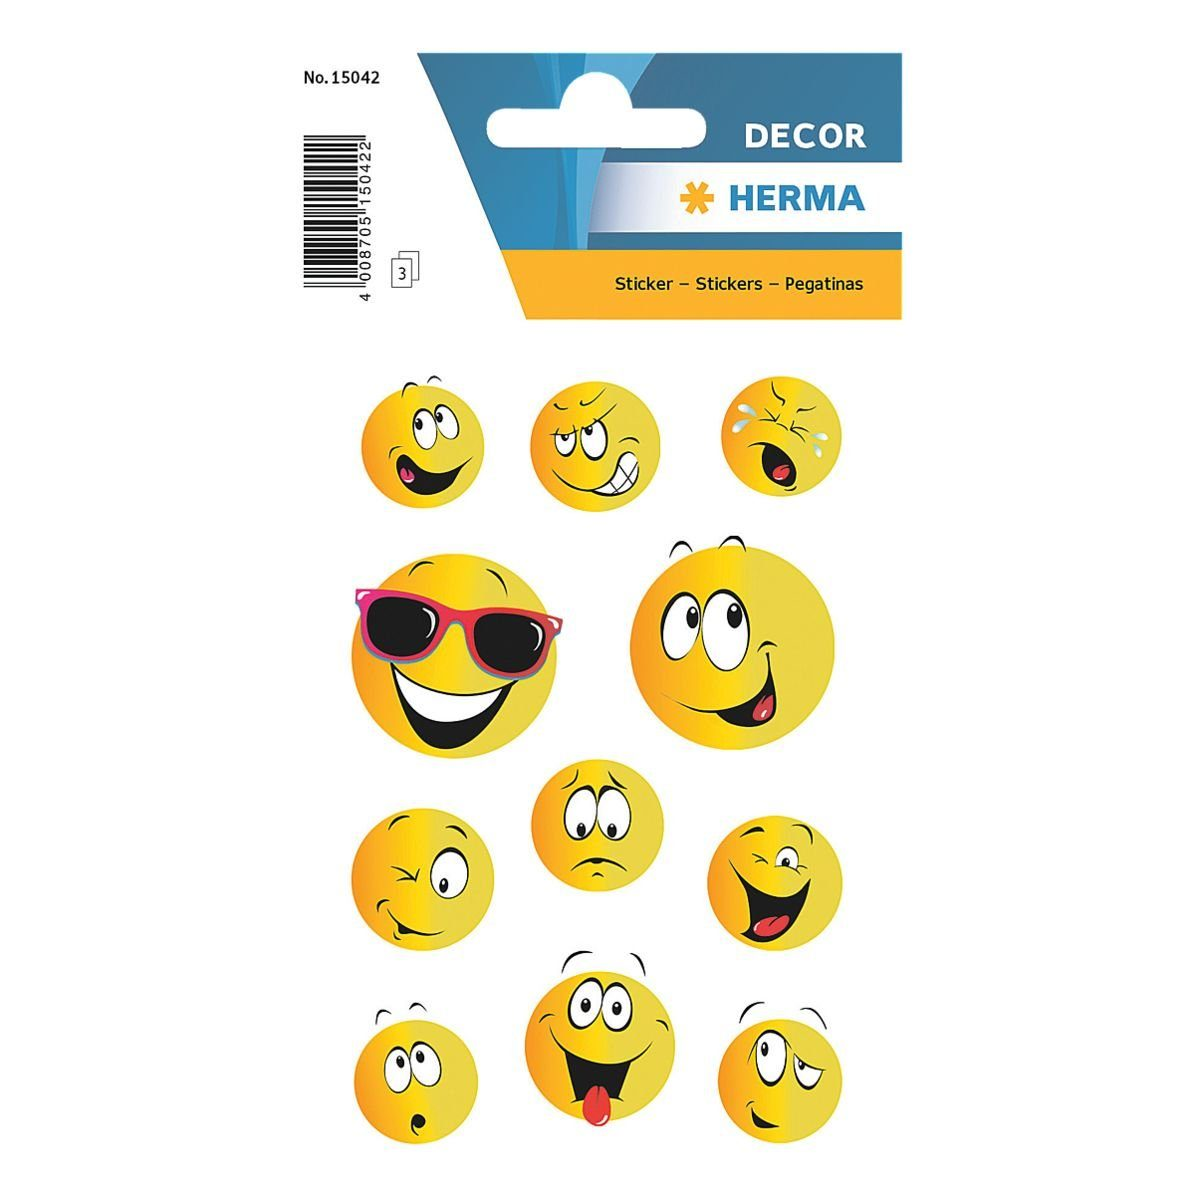 HERMA Sticker DECOR, »Happy Face«